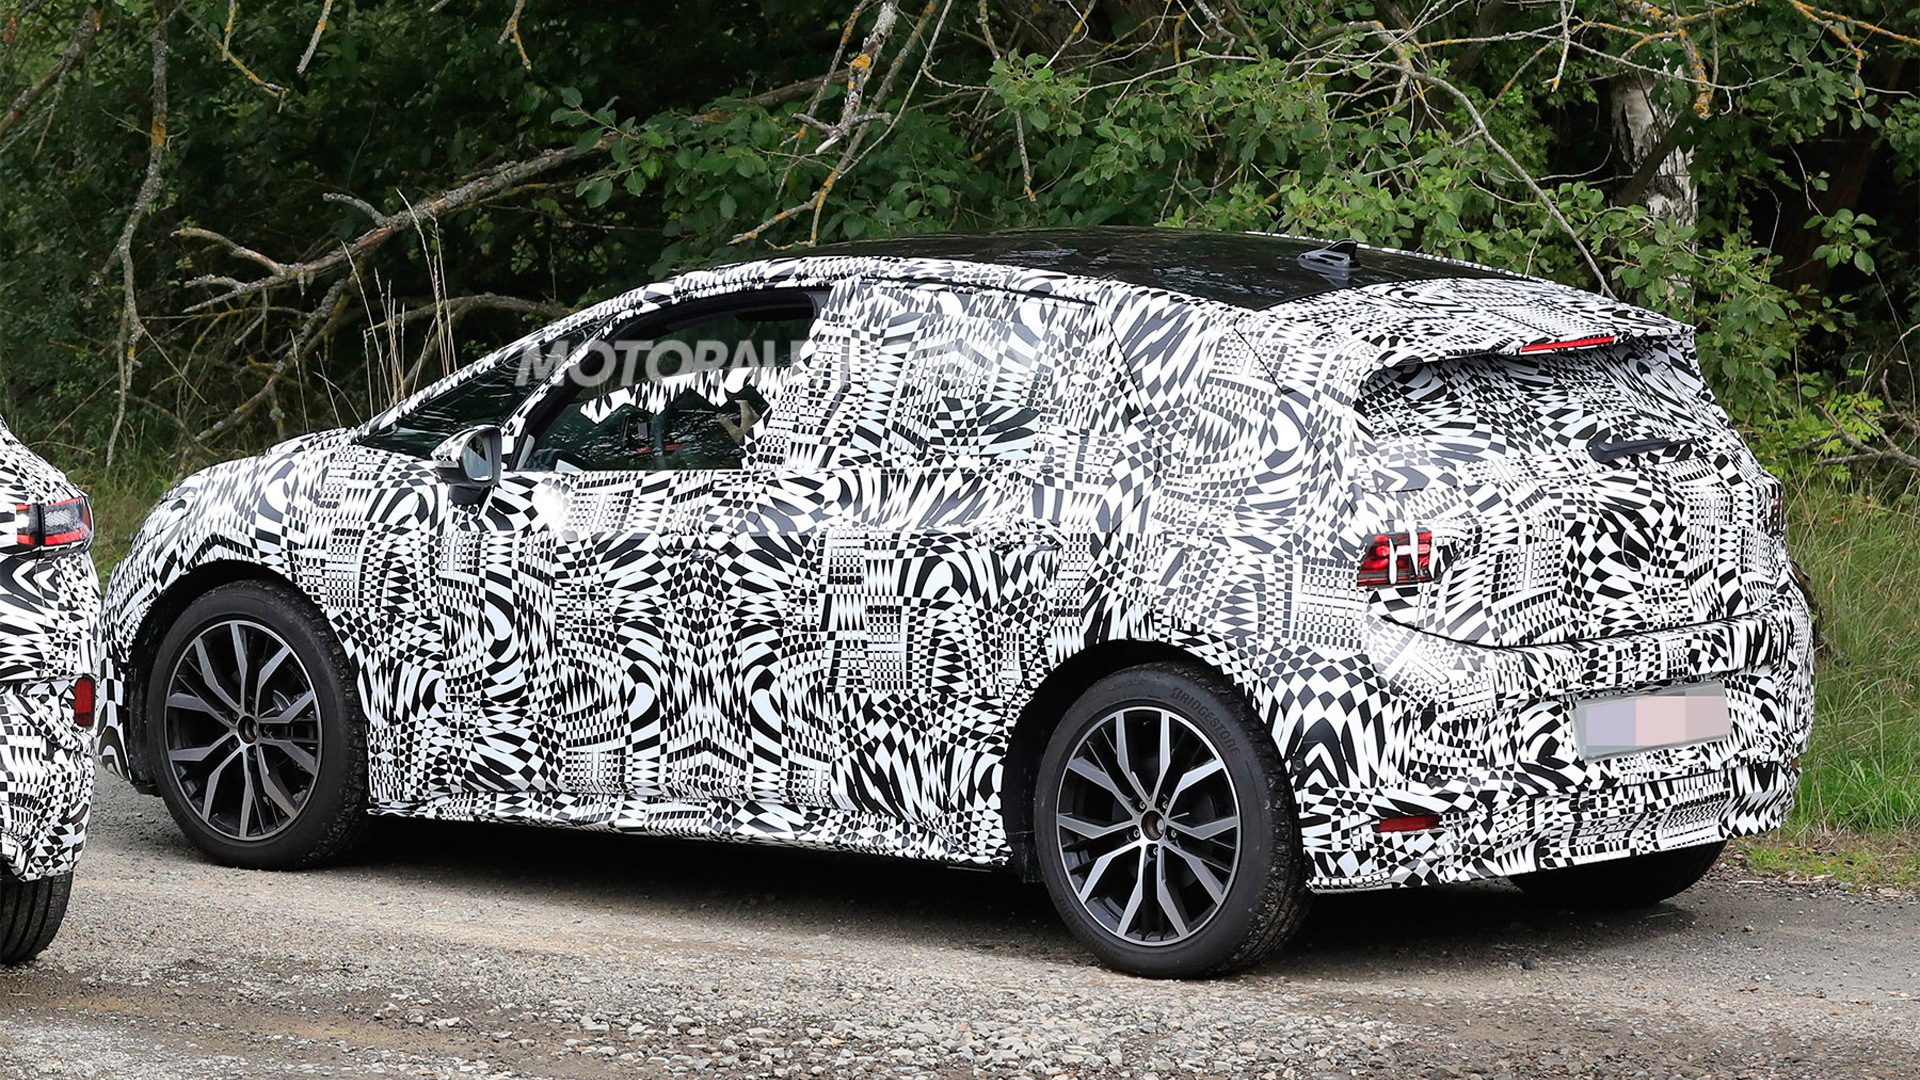 2020 Volkswagen ID 3 spy shots - Photo credit: S. Baldauf/SB-Medien